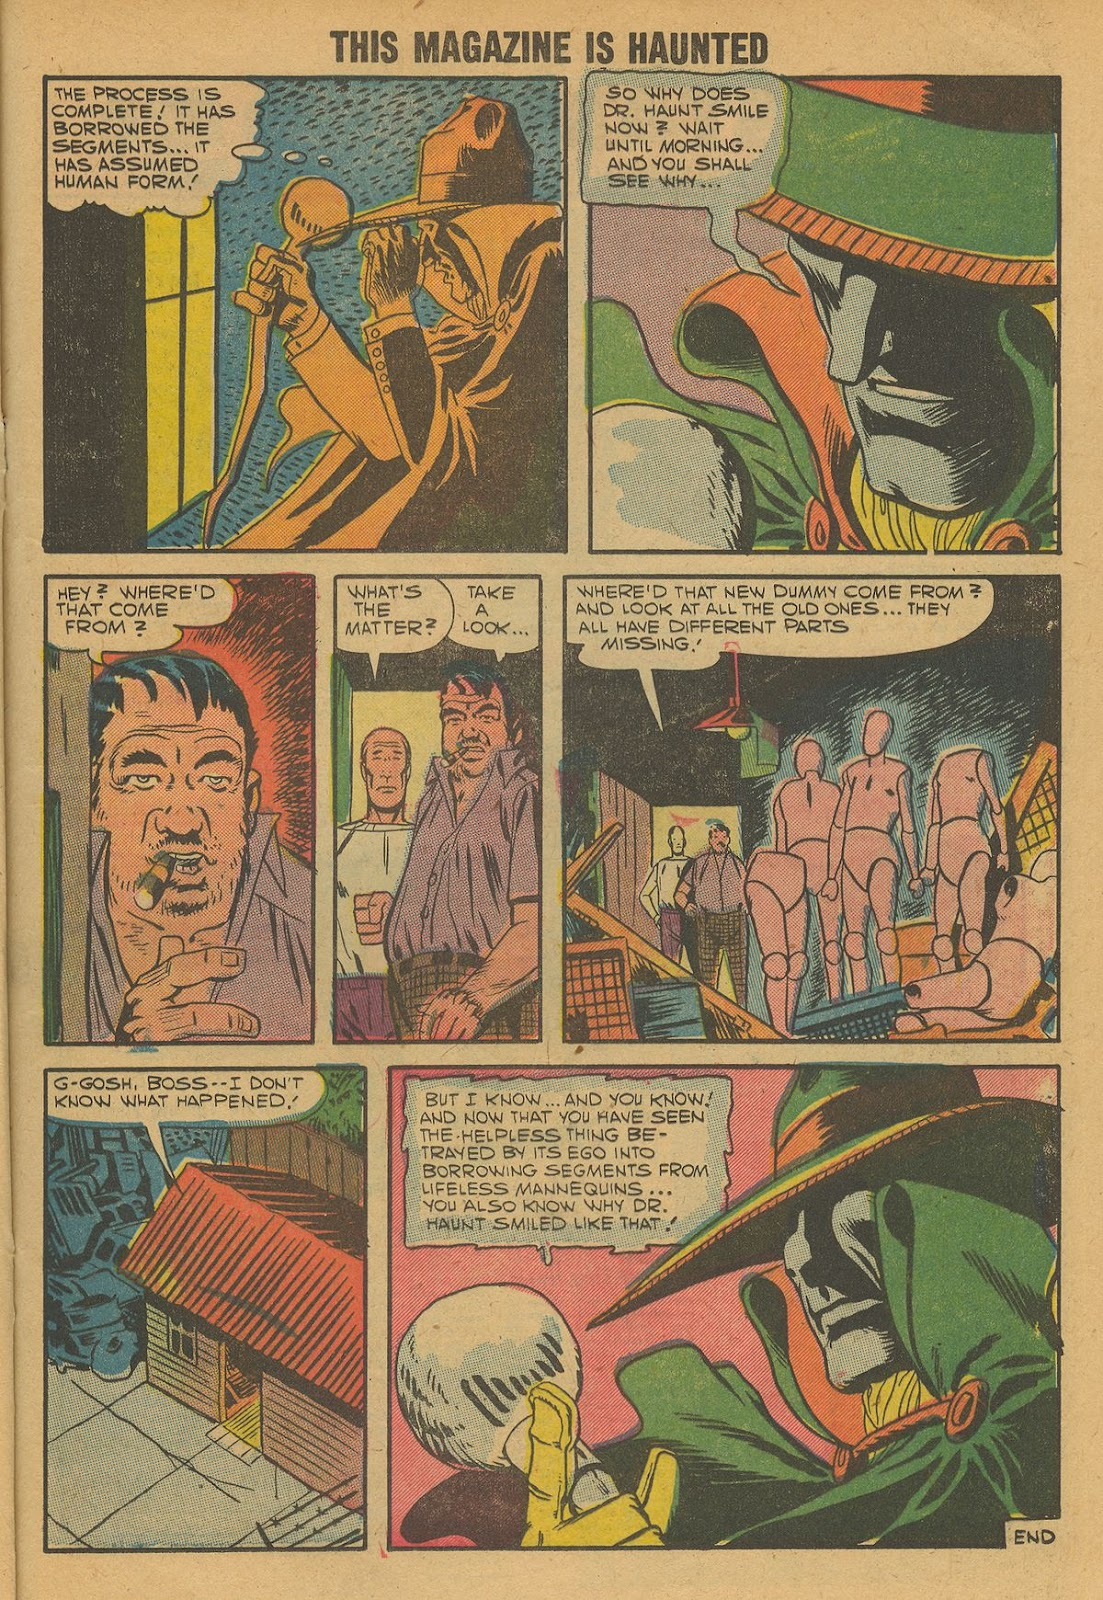 Read online This Magazine Is Haunted comic -  Issue #12 - 21